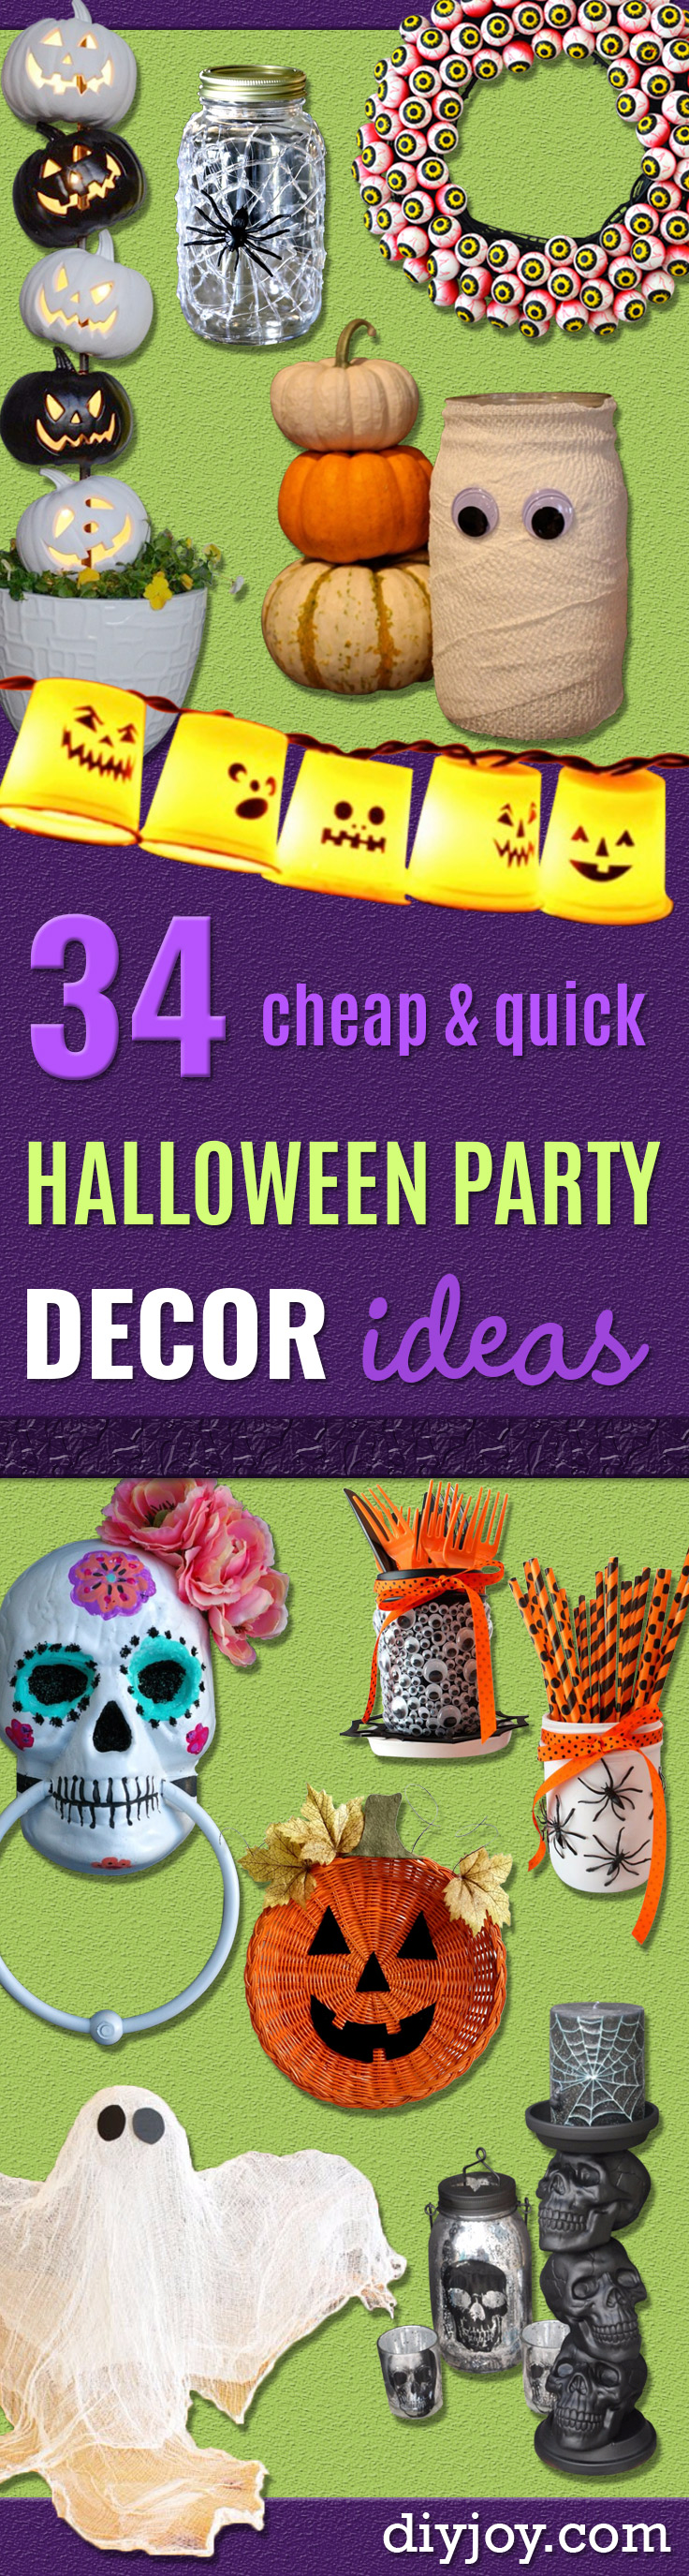 diy halloween decorations best easy cheap and quick halloween decor ideas and crafts for - Cheap Easy Halloween Decorating Ideas